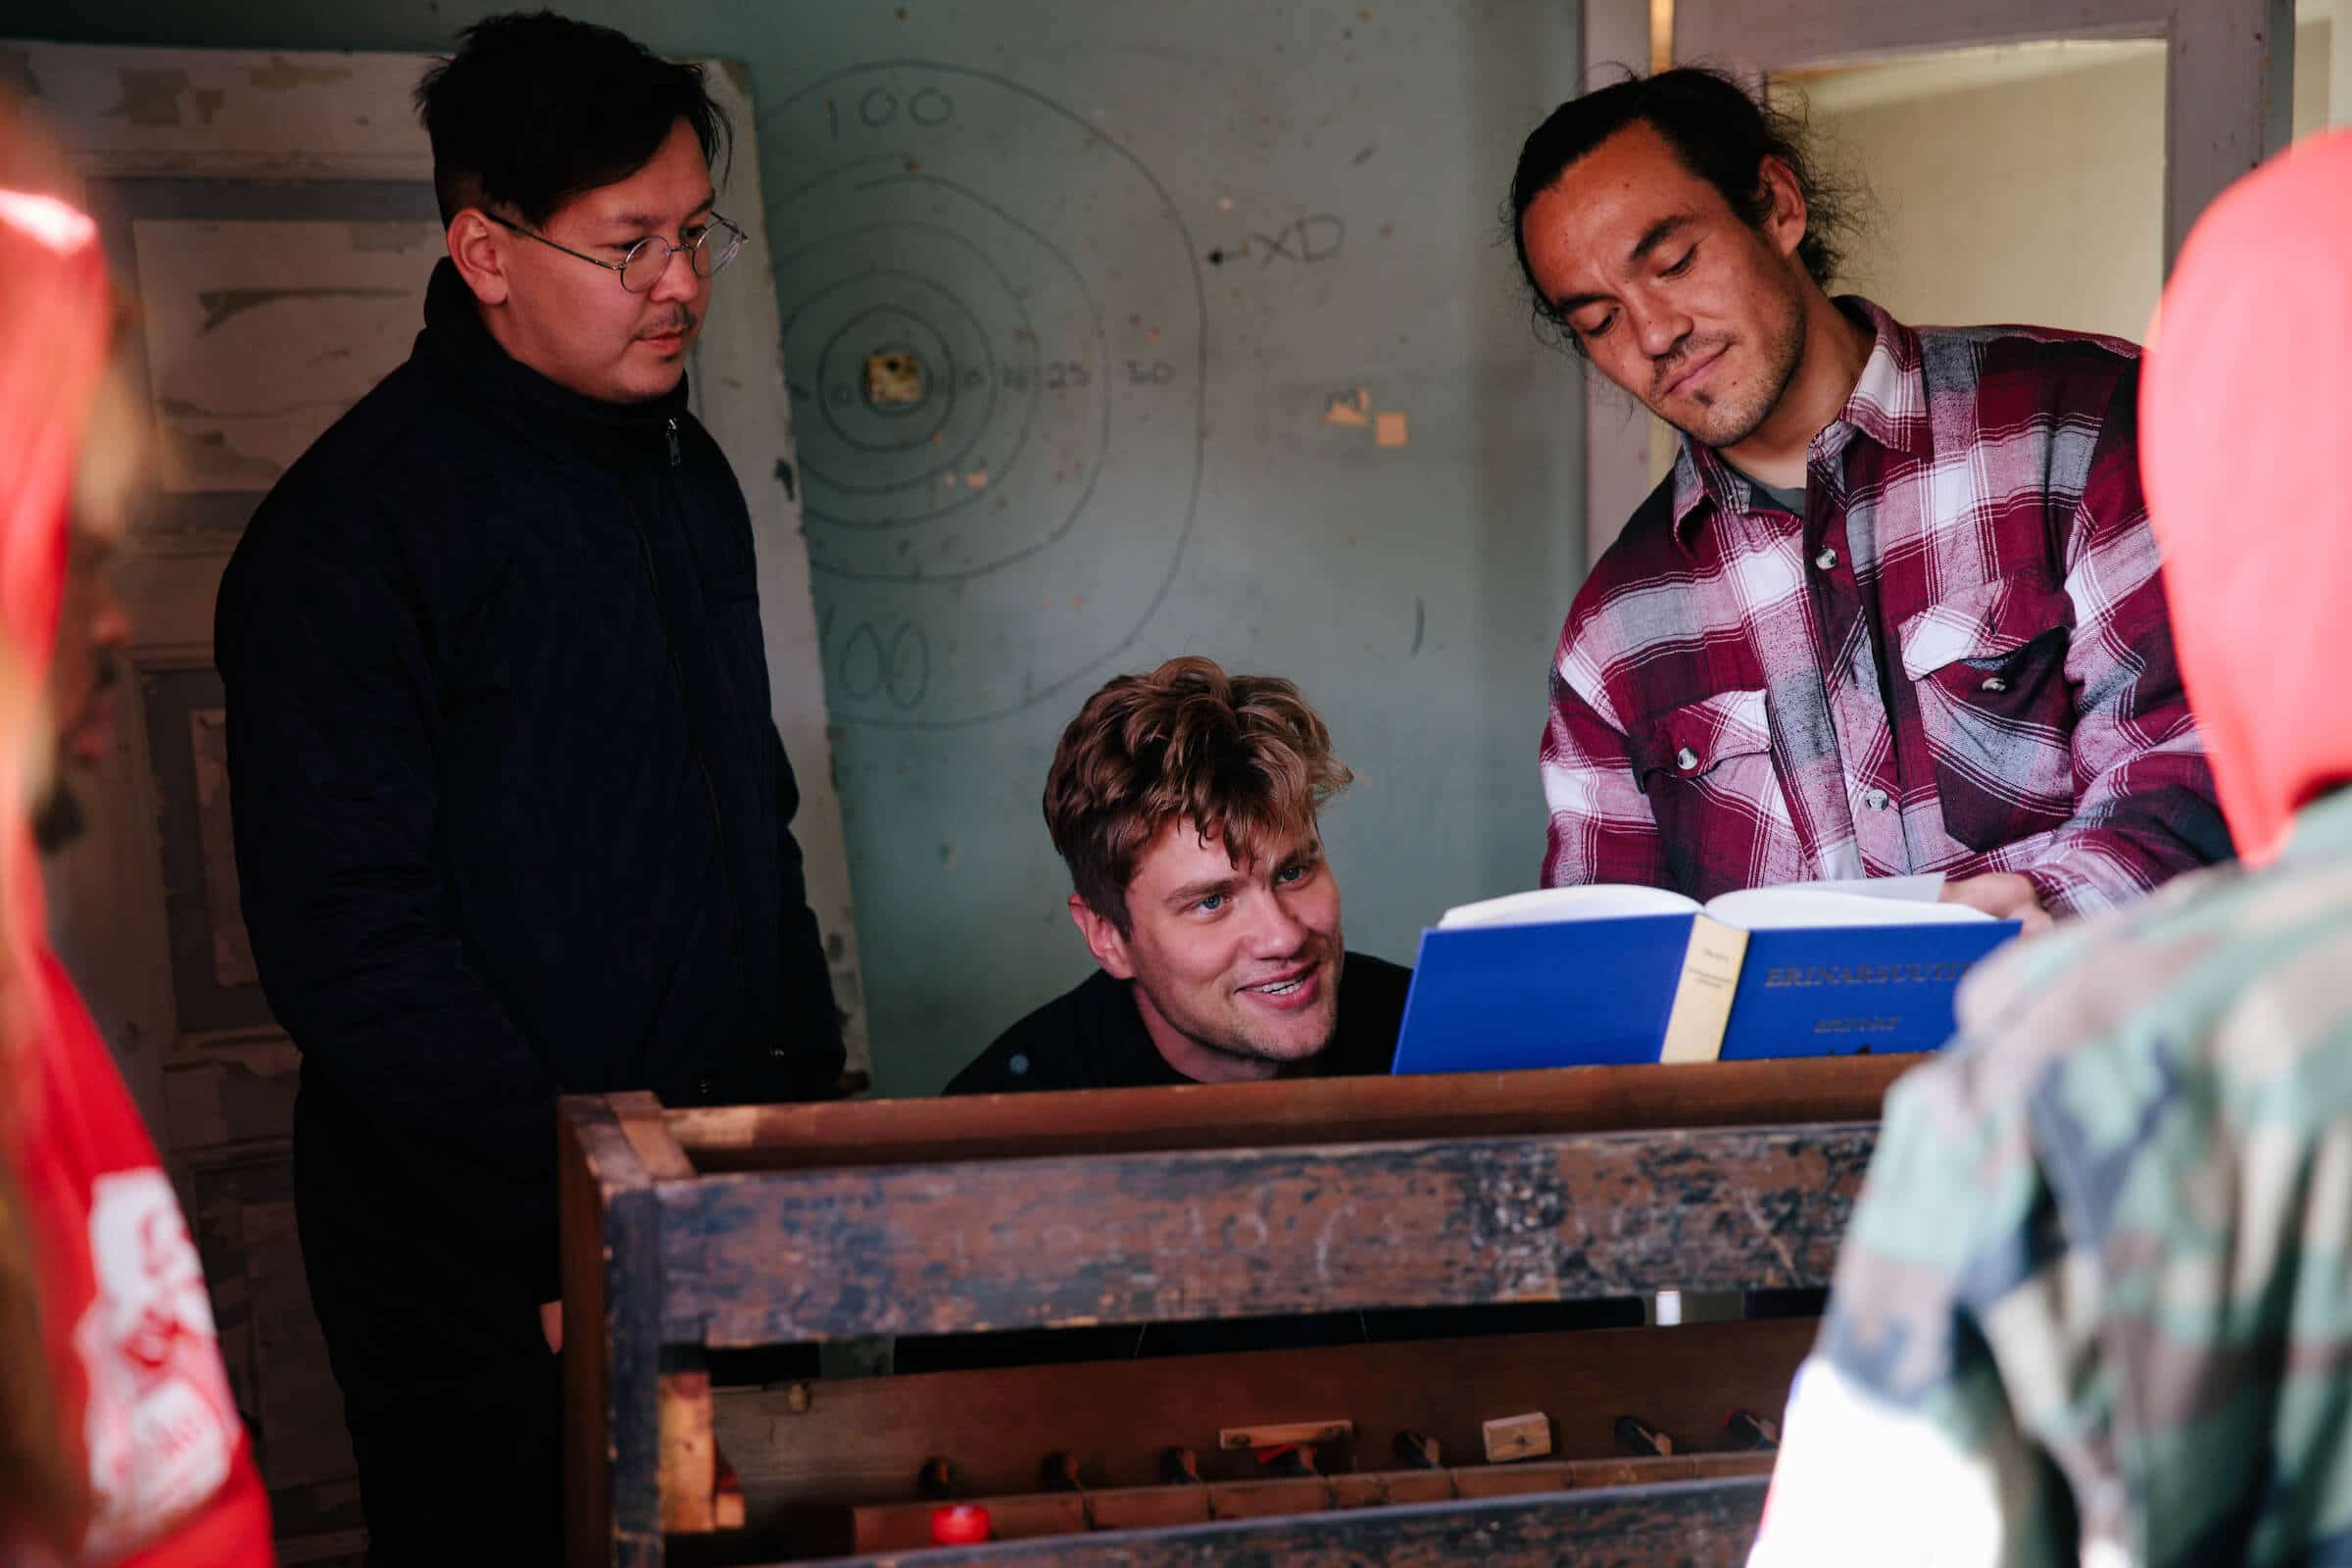 Hans-Henrik Suersaq Poulsen together with Bjarni Frímann and Miké Thomsen in the Post House. Photo by Jessie Brinkman Evans - Visit Greenland